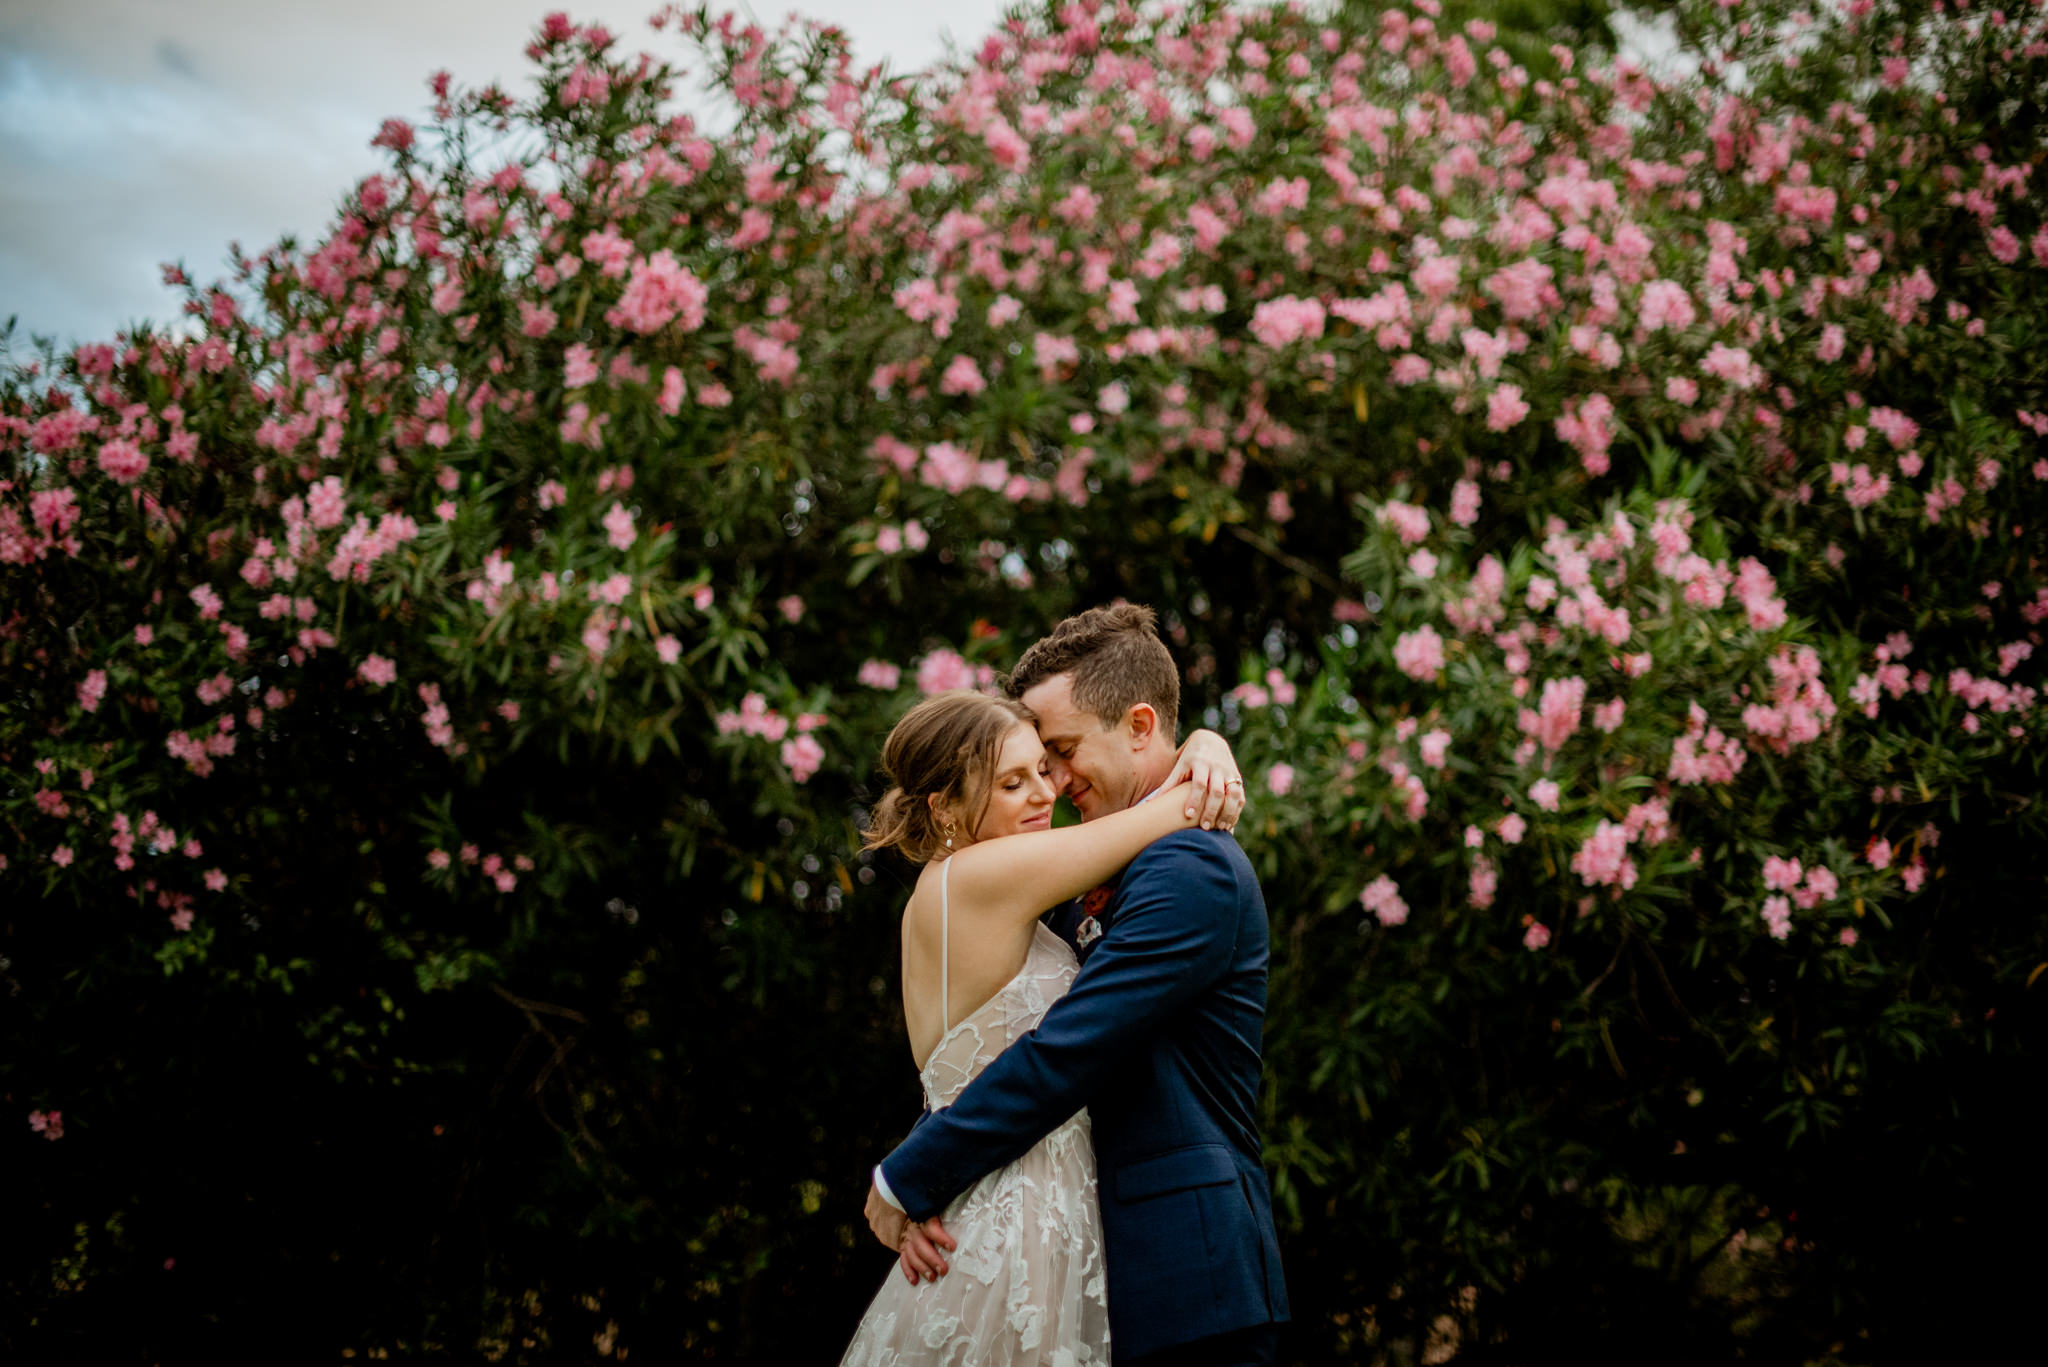 A newly married bride and groom hugging in front of a pink flower bush